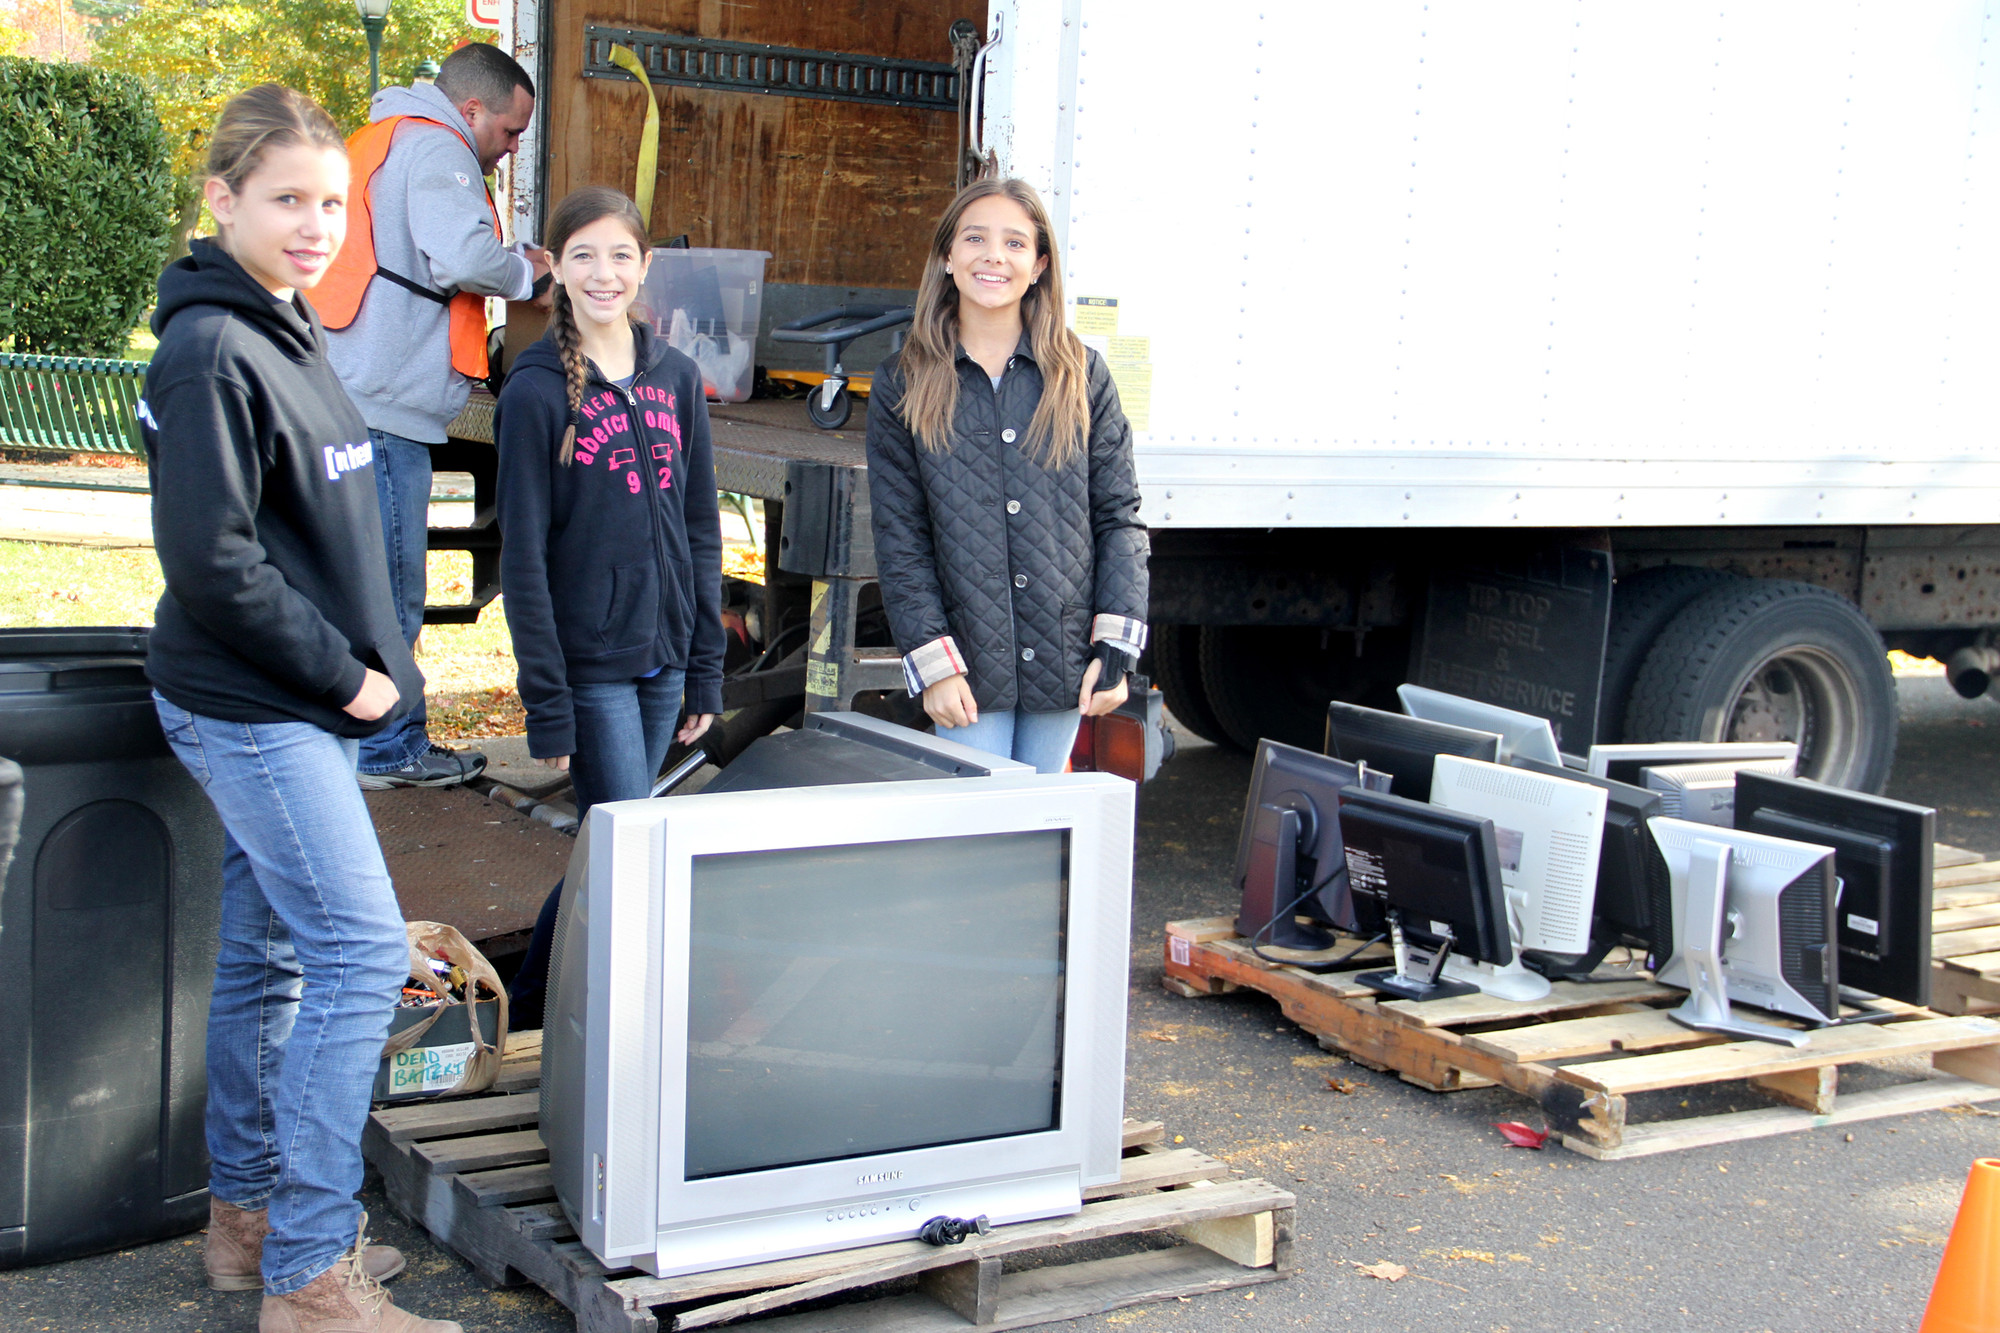 Elizabeth Ray, Victoria Romano and Ali Bianco volunteered their time to help with the recycling efforts.